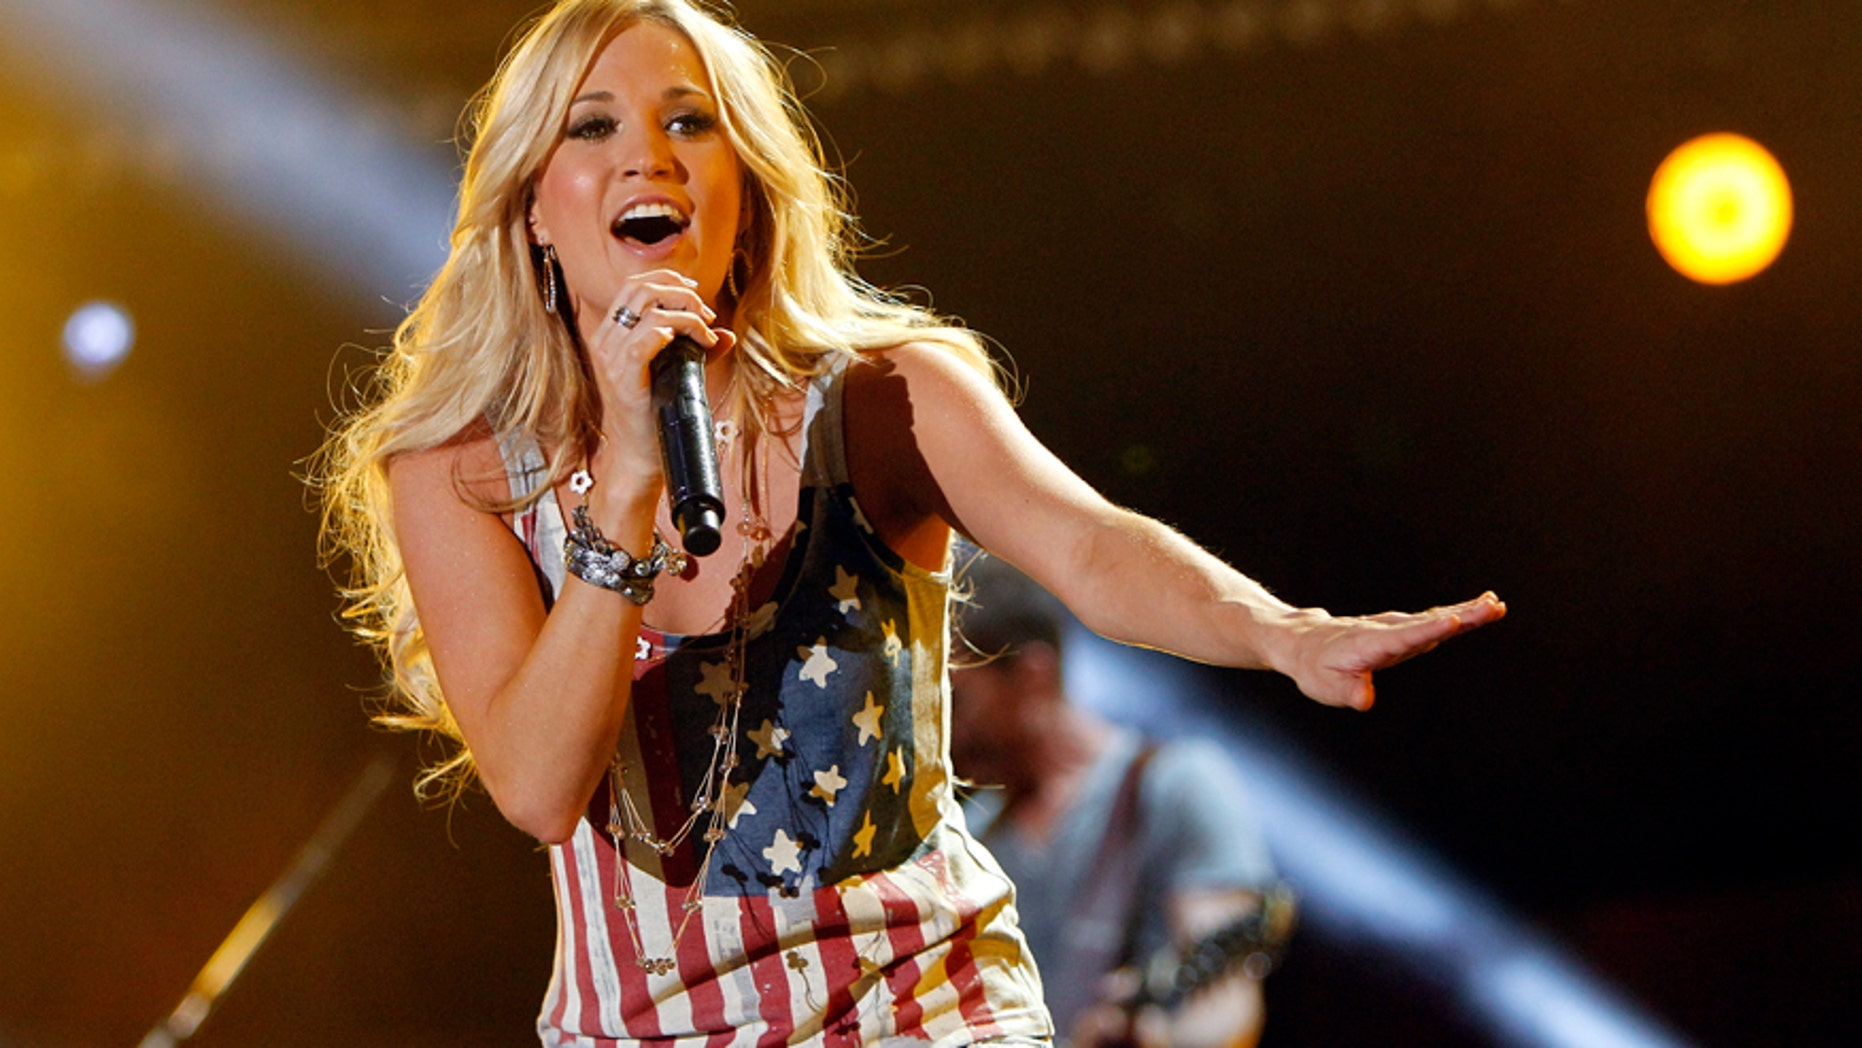 Carrie Underwood performs during the Country Music Association (CMA) Music Festival in Nashville, Tennessee June 8, 2012. REUTERS/Harrison McClary (UNITED STATES - Tags: ENTERTAINMENT) - RTR33BPF